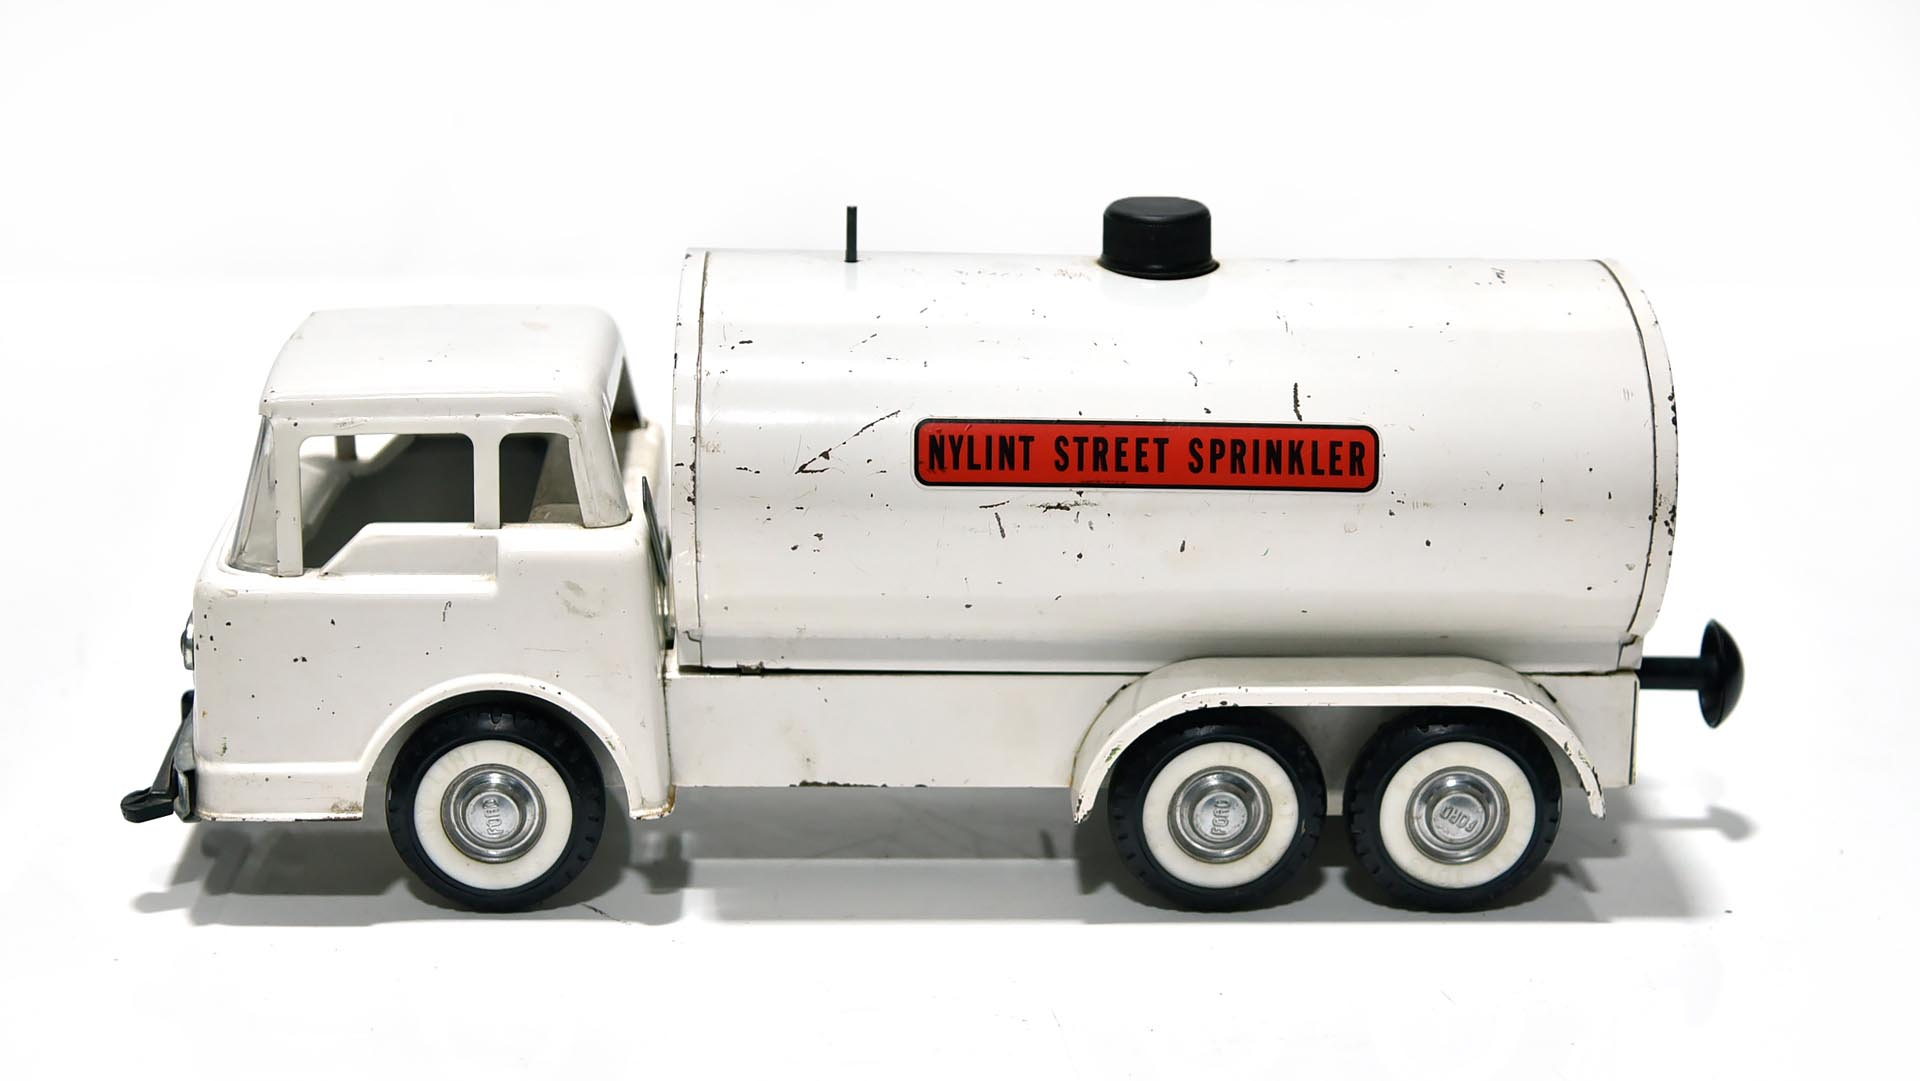 Nylint Street Sprinkler FORD Pressed Steel Toy Tanker Truck